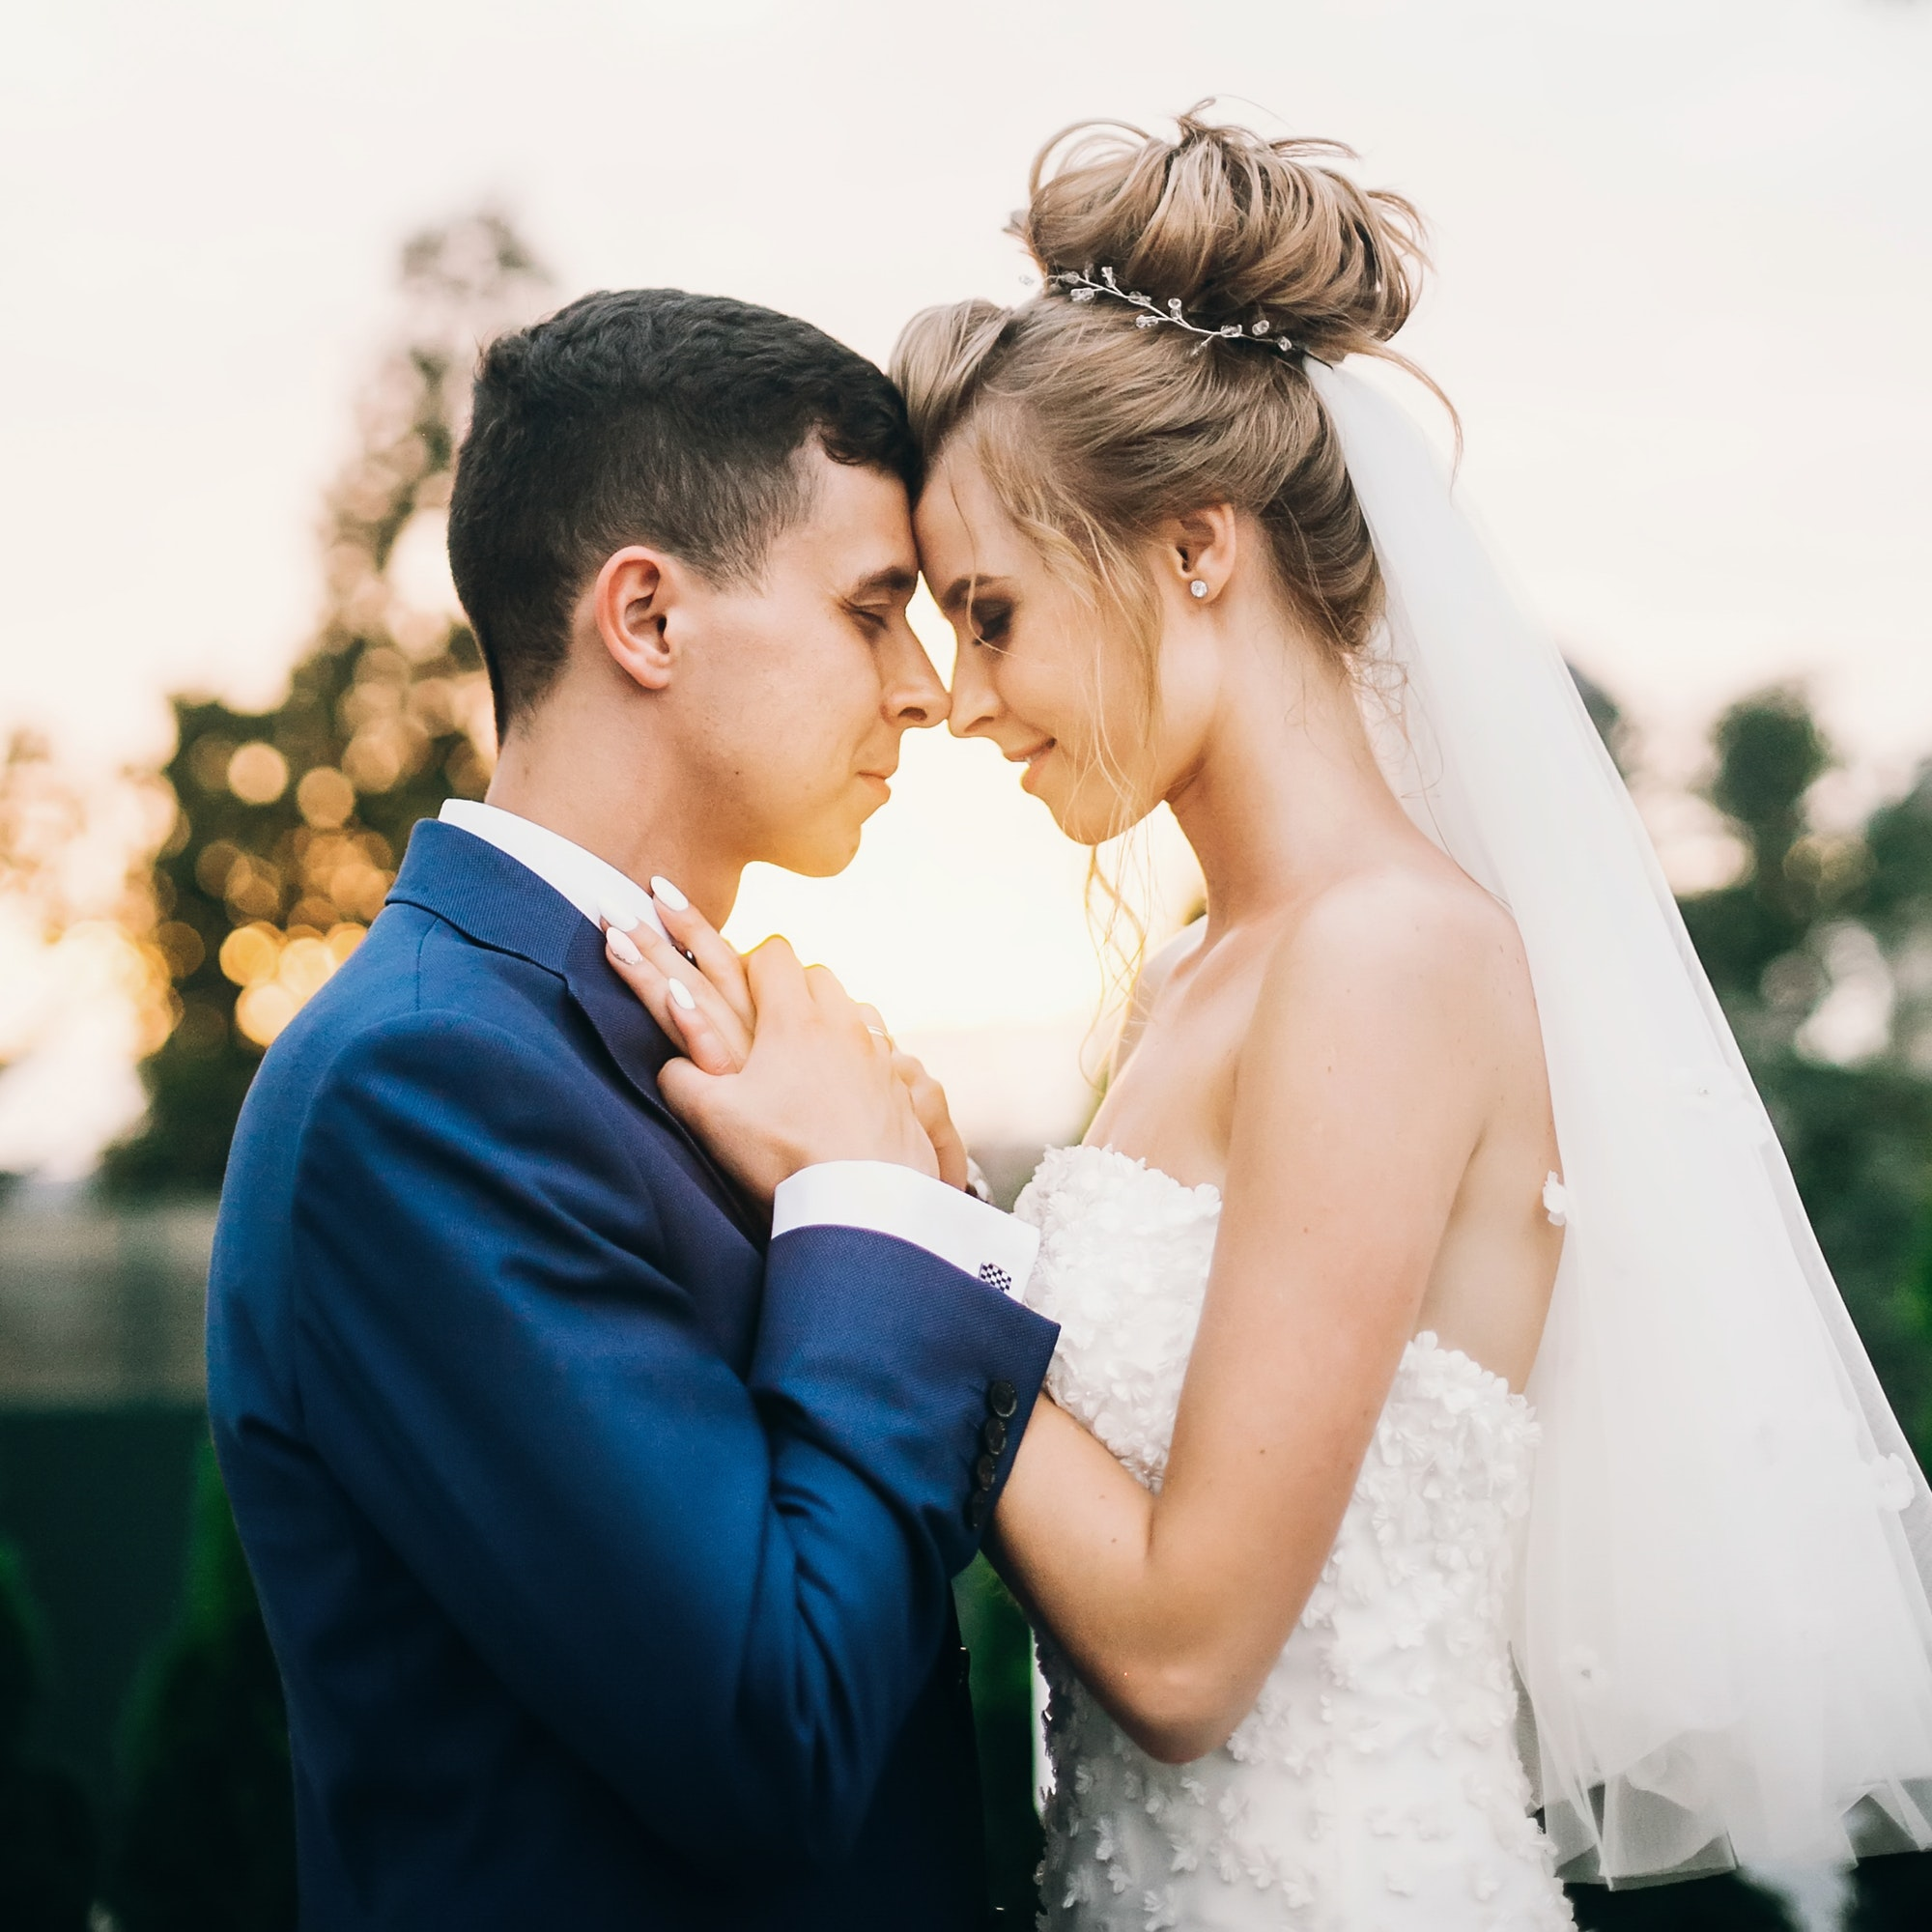 Stylish happy bride and groom posing in warm sunset light at wedding reception